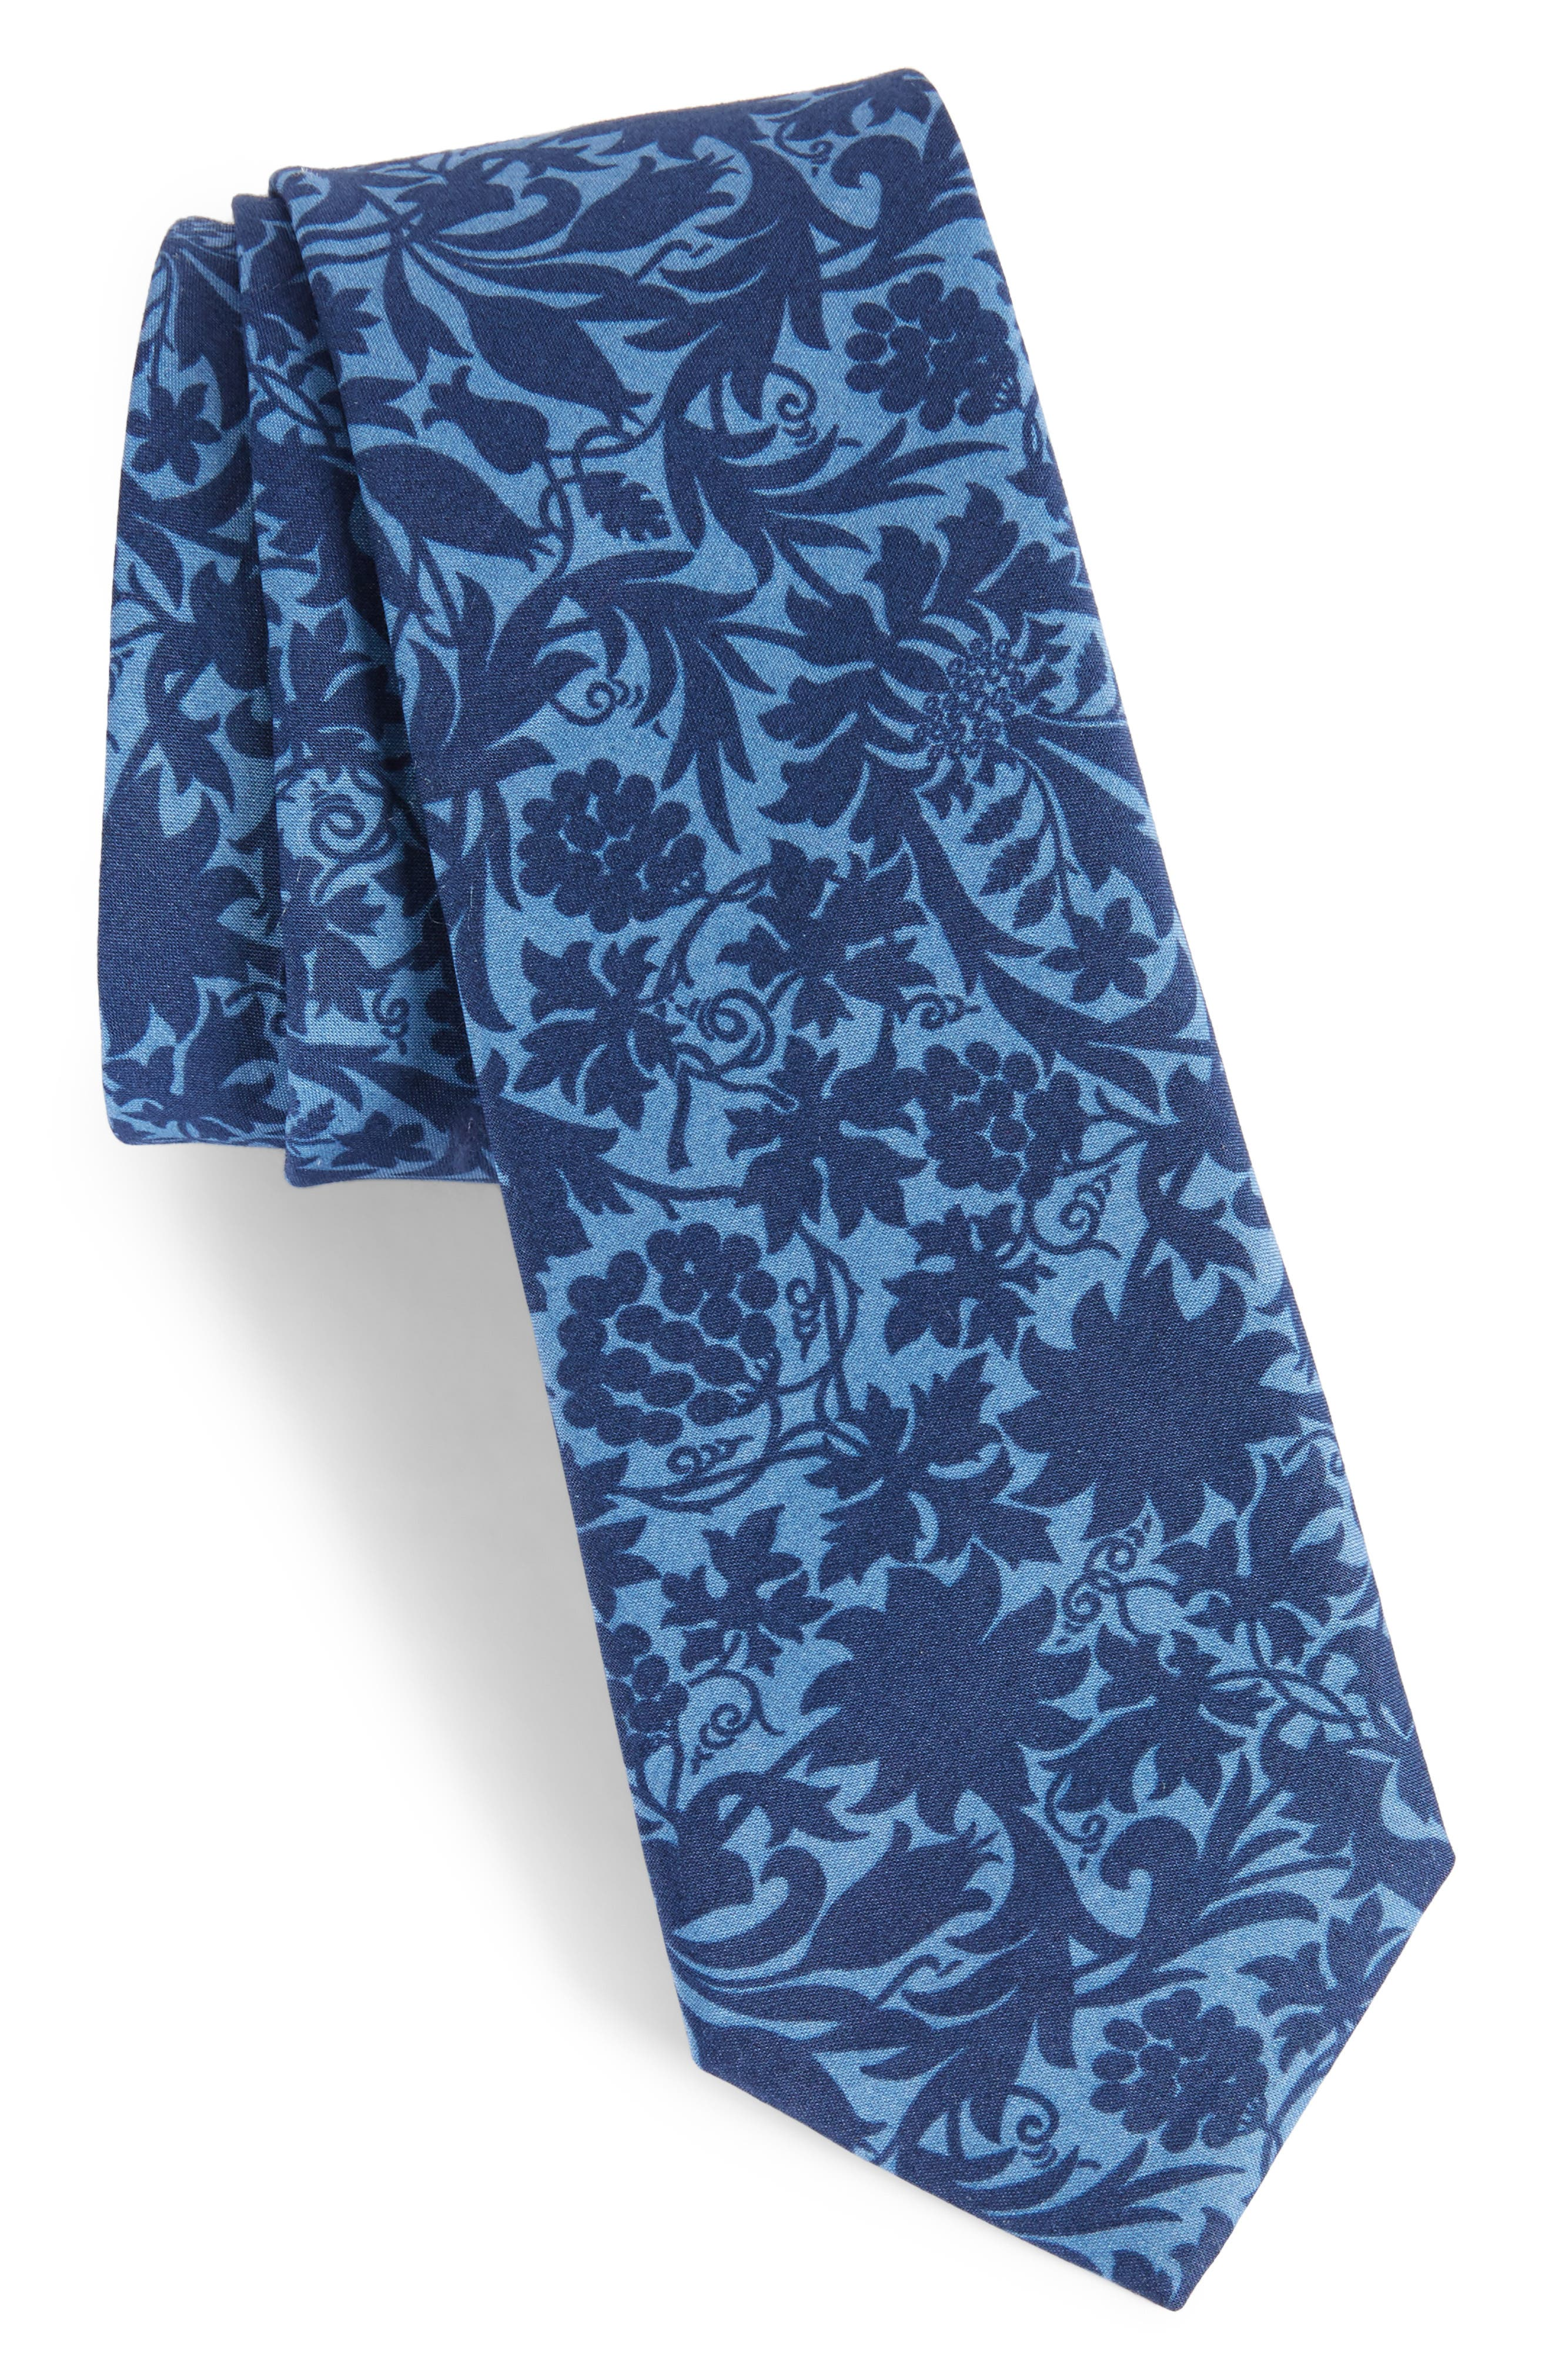 Paul Smith Floral Cotton Skinny Tie